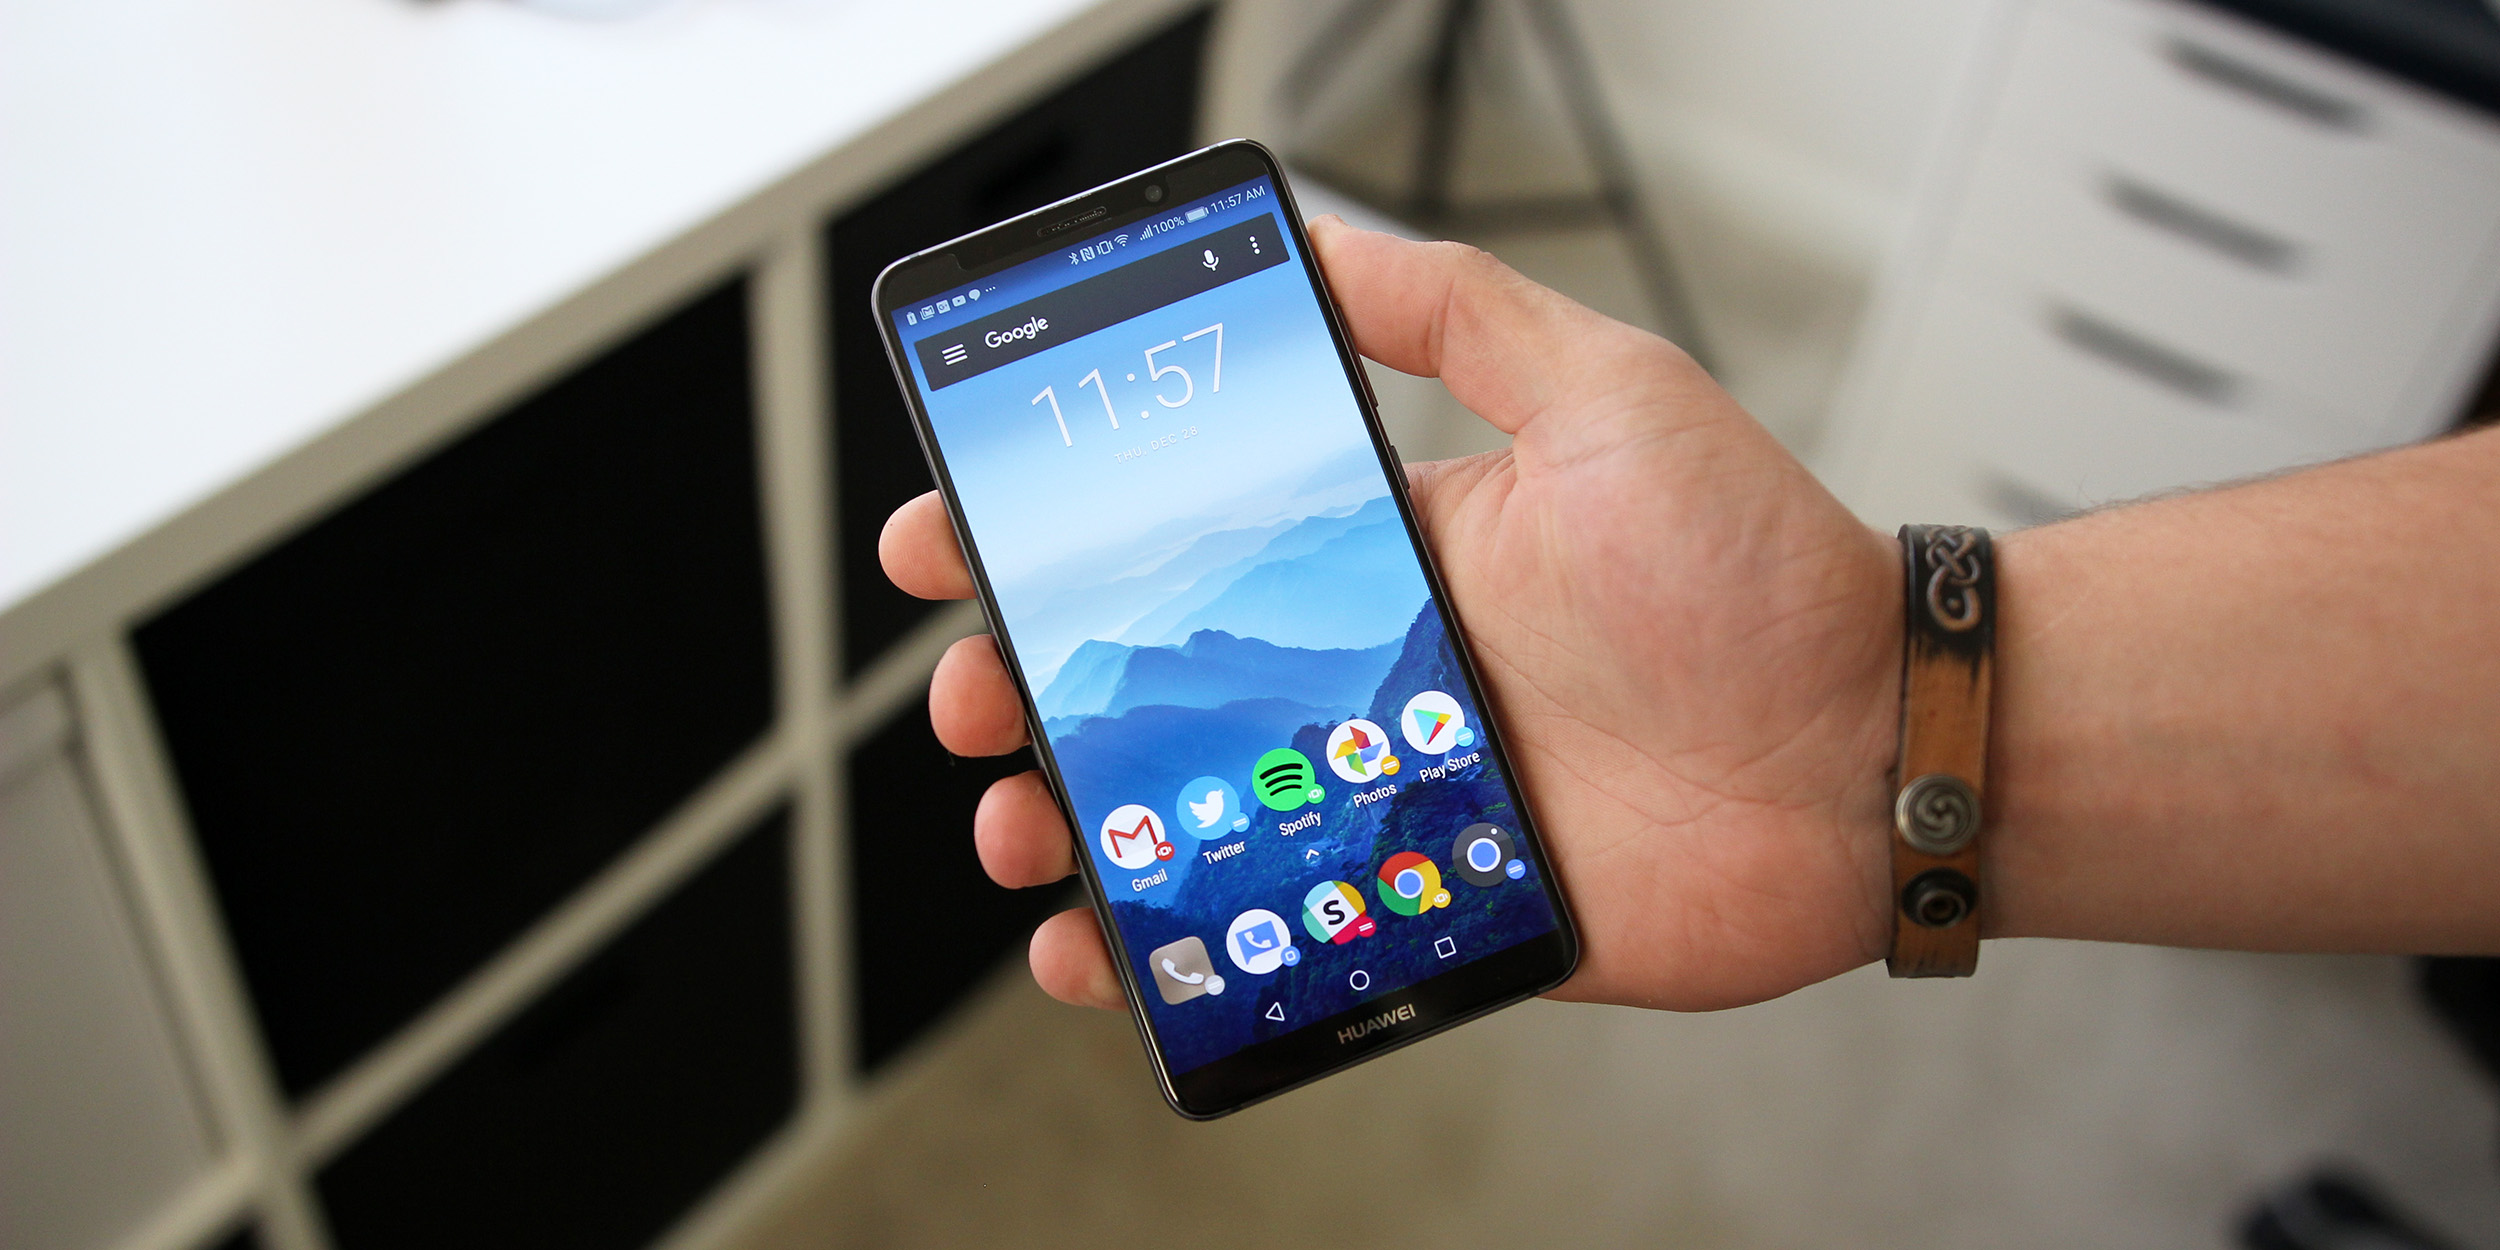 Huawei Mate 10 Pro and Honor 7X: Hands on with Huawei's 2018